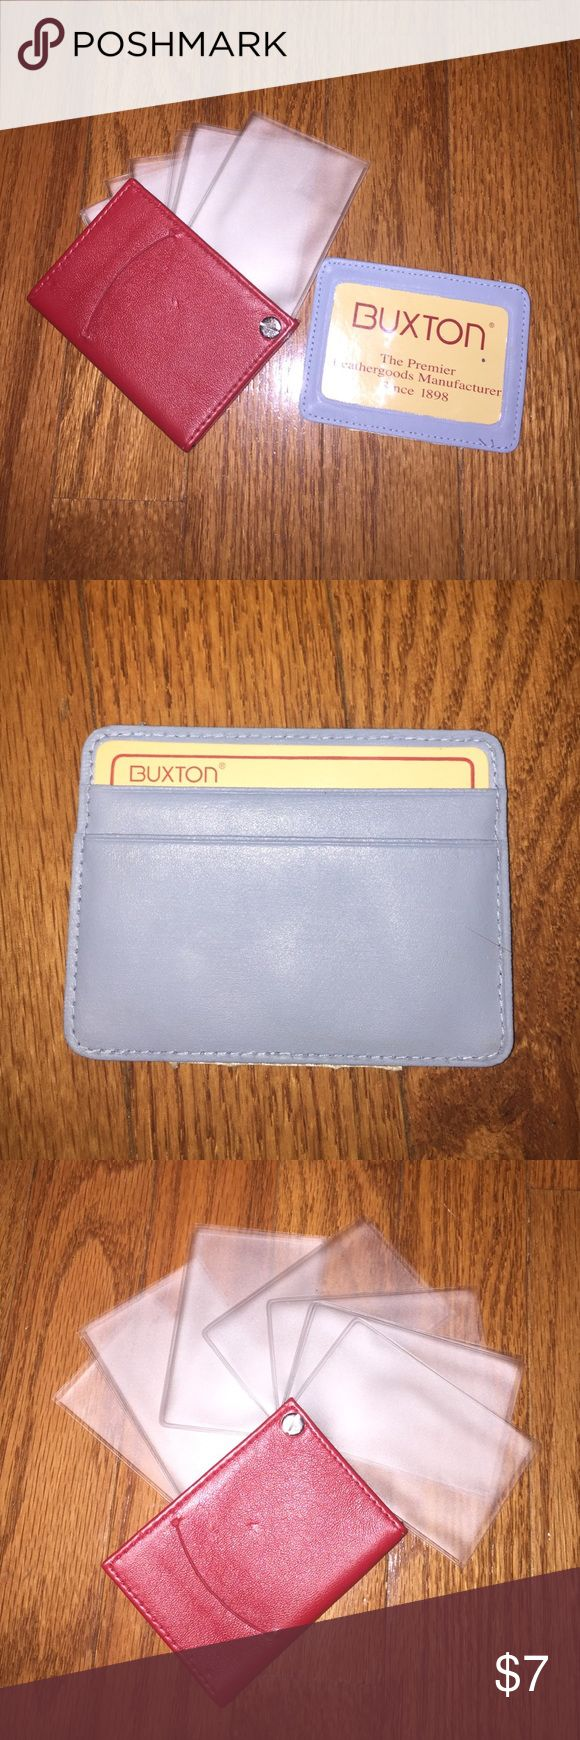 """2 Buxton Leather Credit Card/ID Holders 🔹Red Buxton credit card or photo carrier measures 2 3/4"""" x 4"""". Features 10 slide out clear holders for pictures or credit cards. 🔹Blue Buxton credit card and ID carrier features 2 slots in the back for credit cards and one clear slot in the front for ID or photo. Measures 3 3/4"""" x 2 3/4"""". Both new, never used. Please feel free to make an offer!! 💞 Buxton Bags Wallets"""